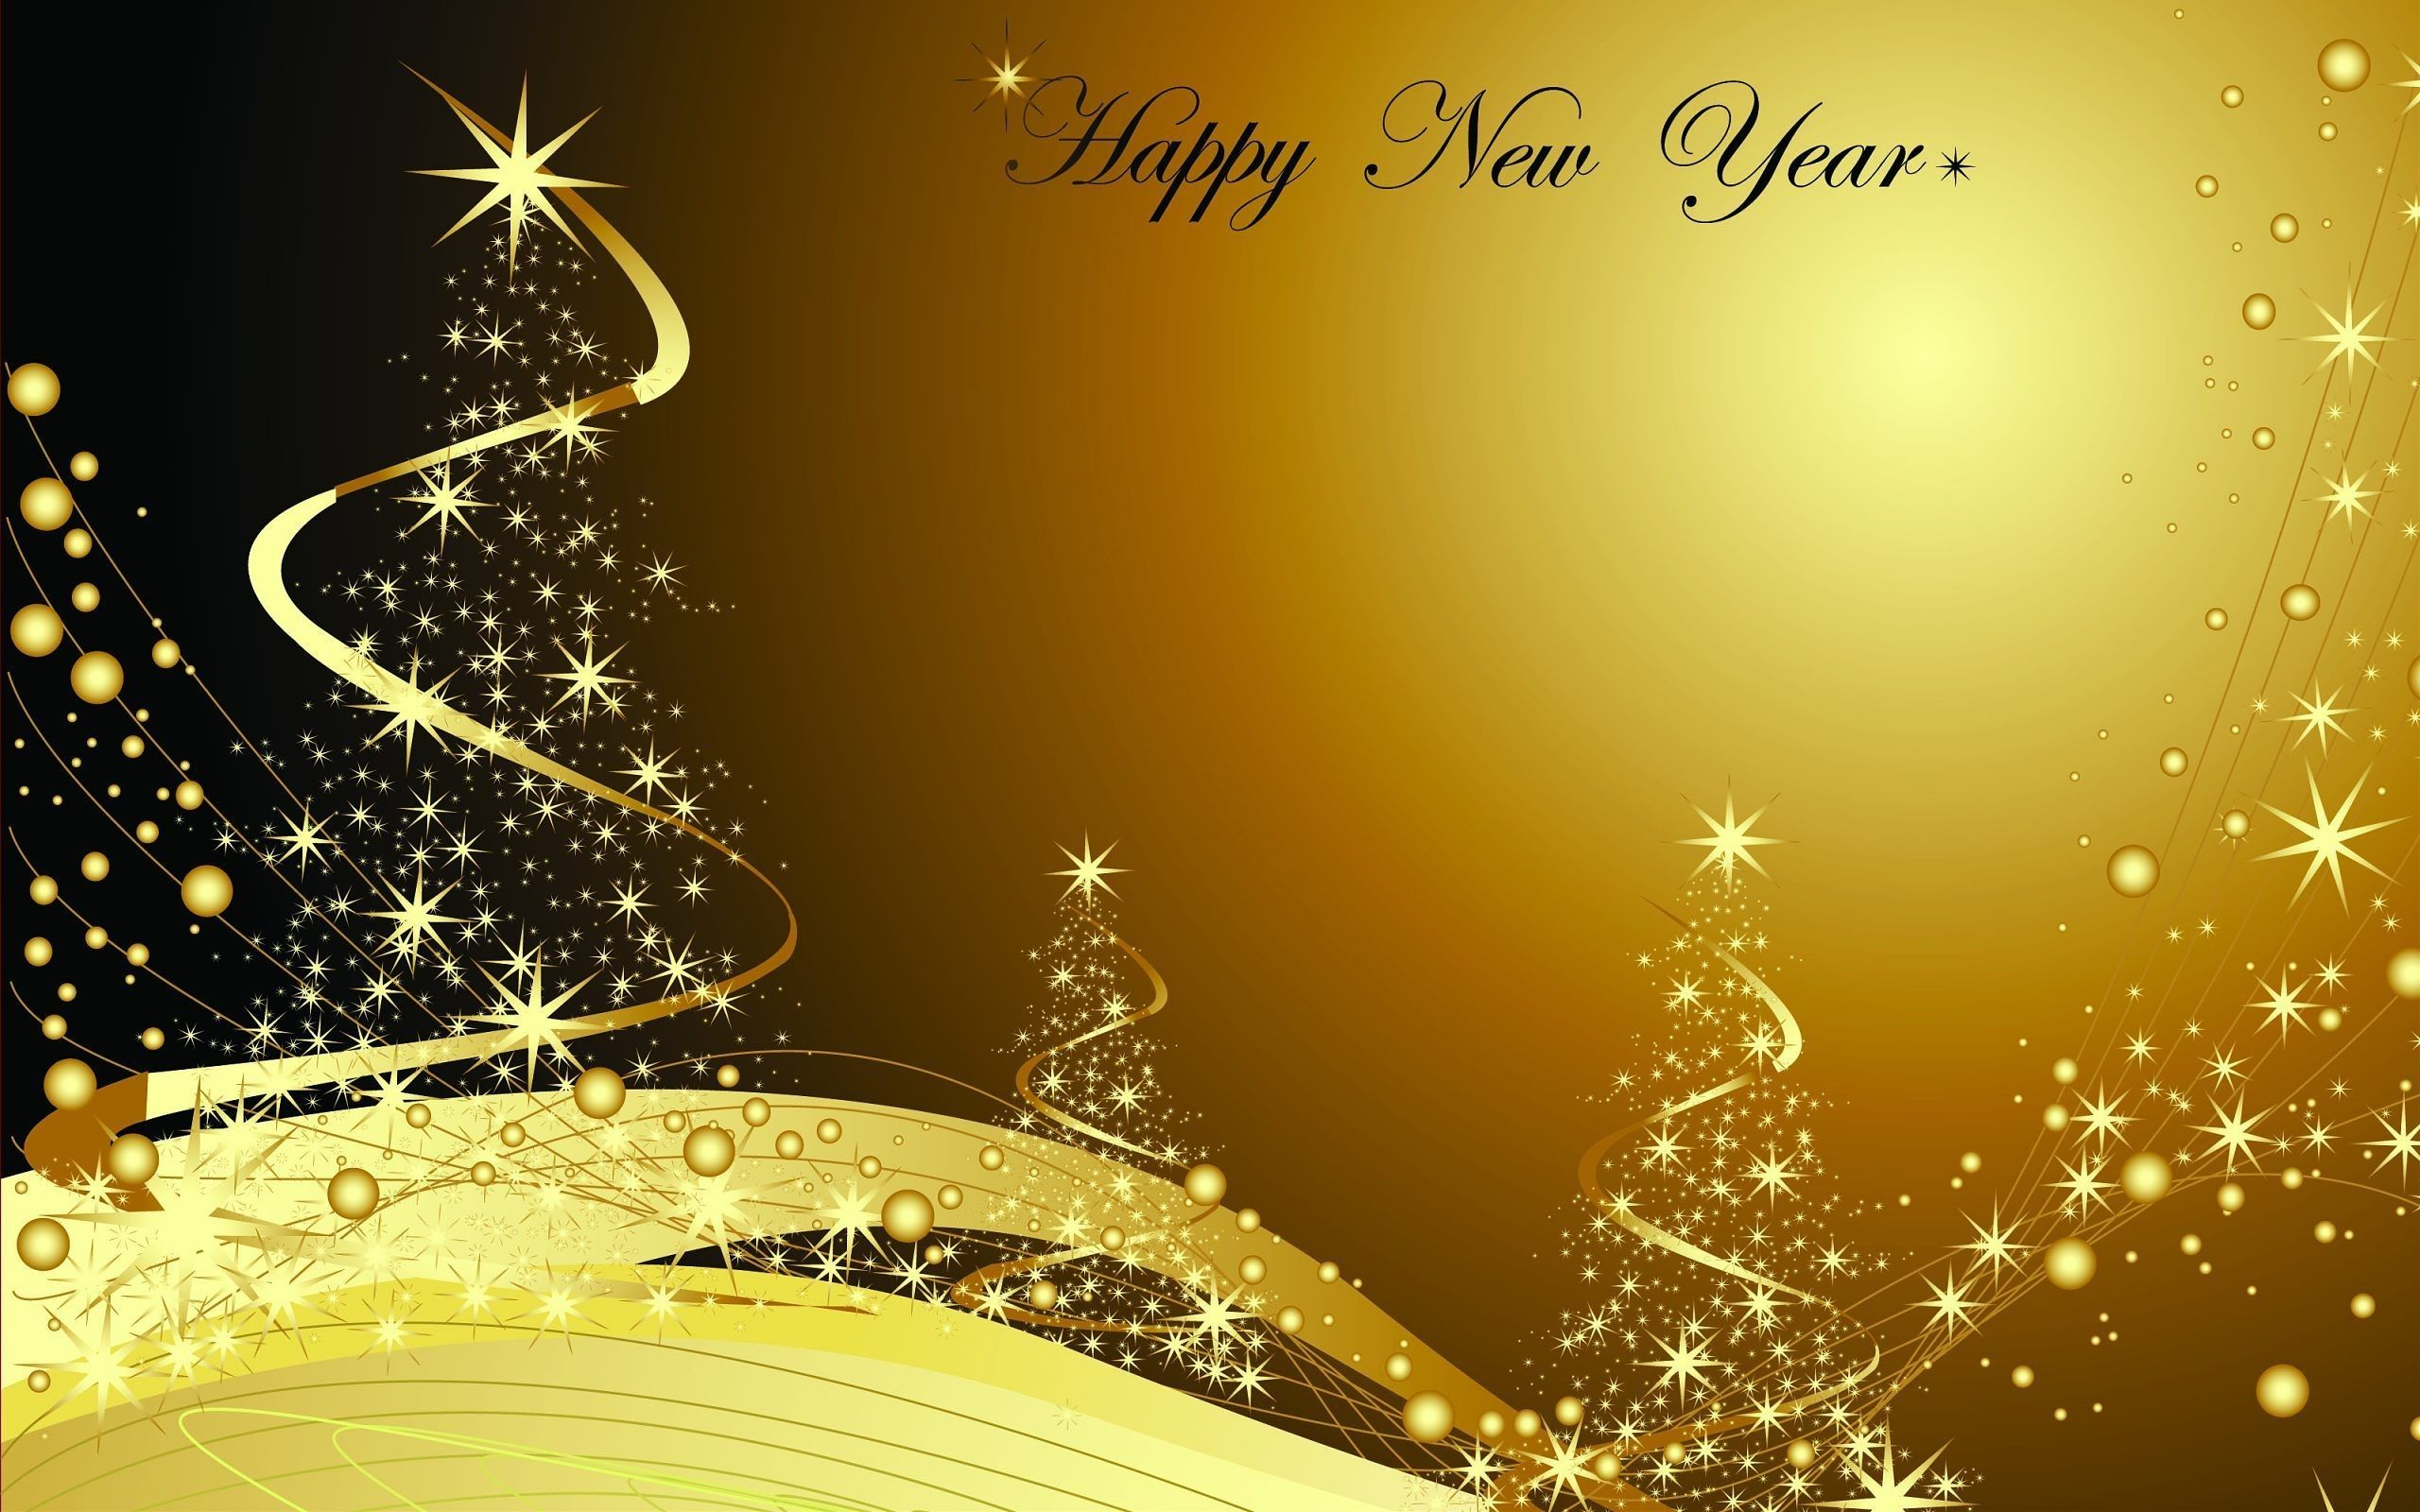 happy new year 2016 hindi sms shayari messages wishes images hd wallpapers quotes greeting cards clipart romantic advance sms holidays calendar